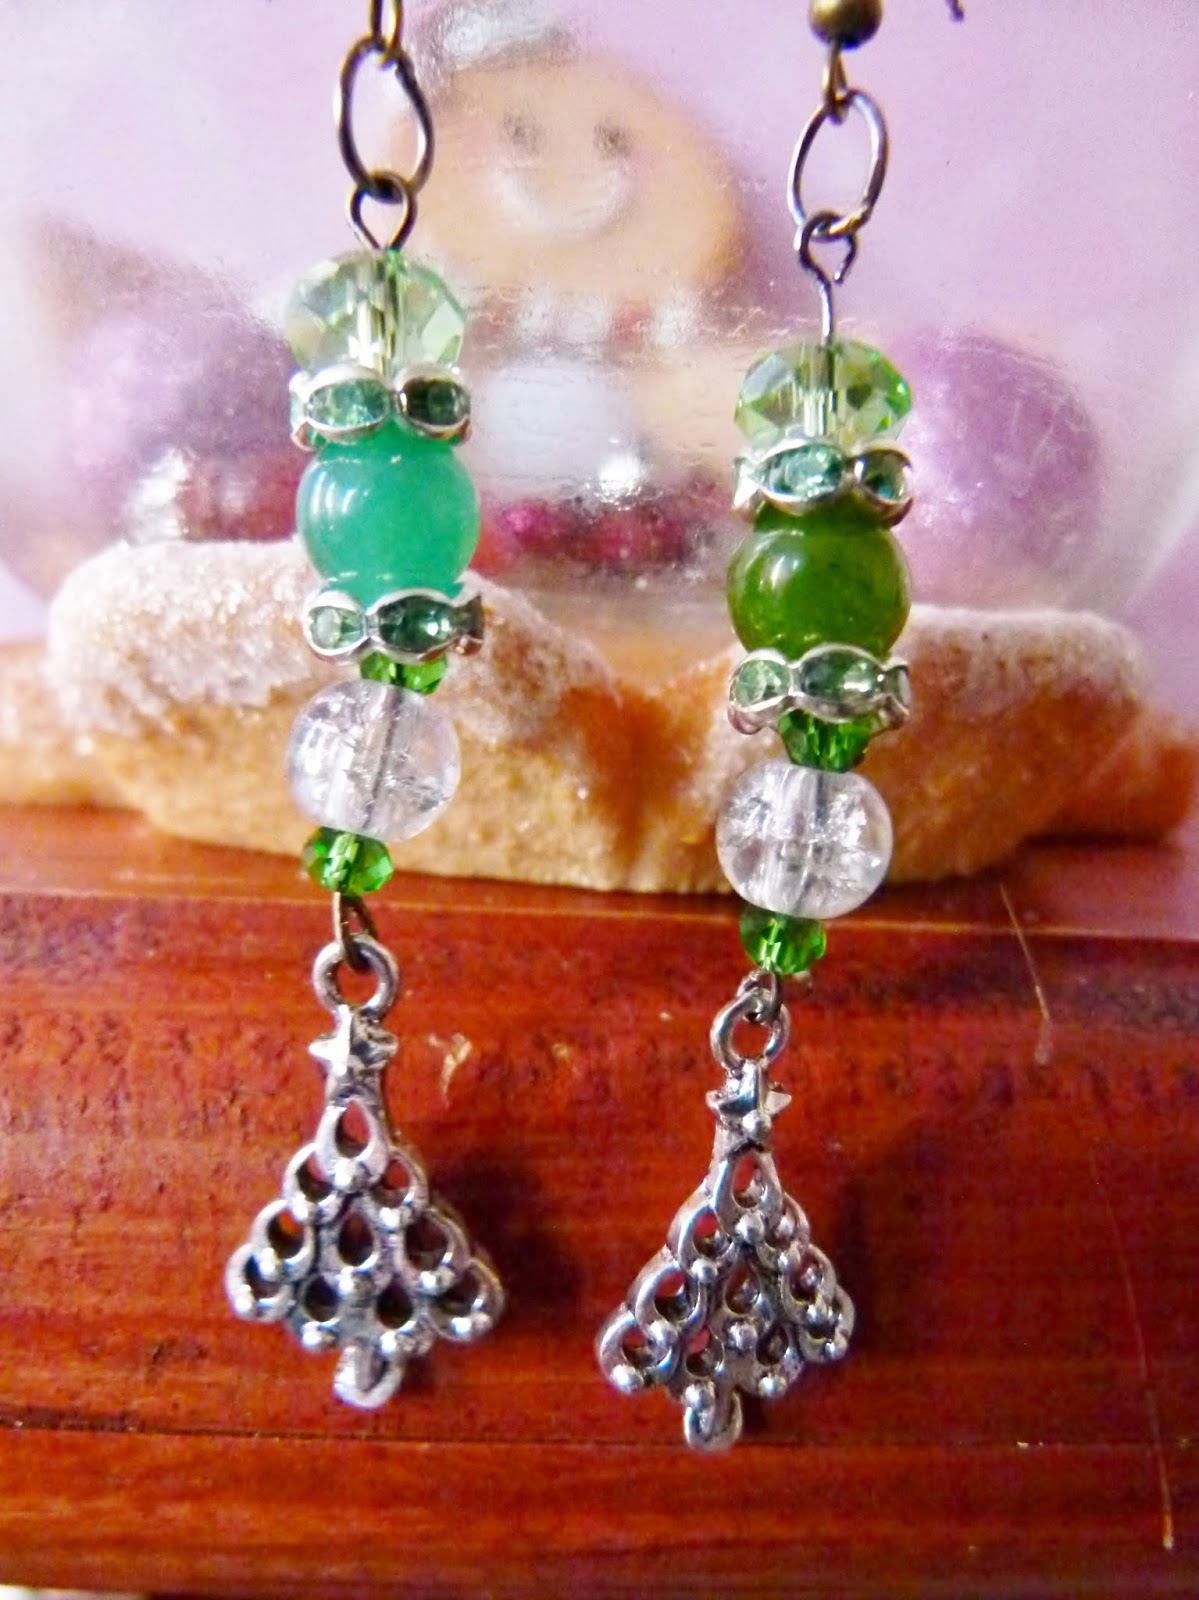 Festive Fun Day 6: tacky earrings and other Christmas ...